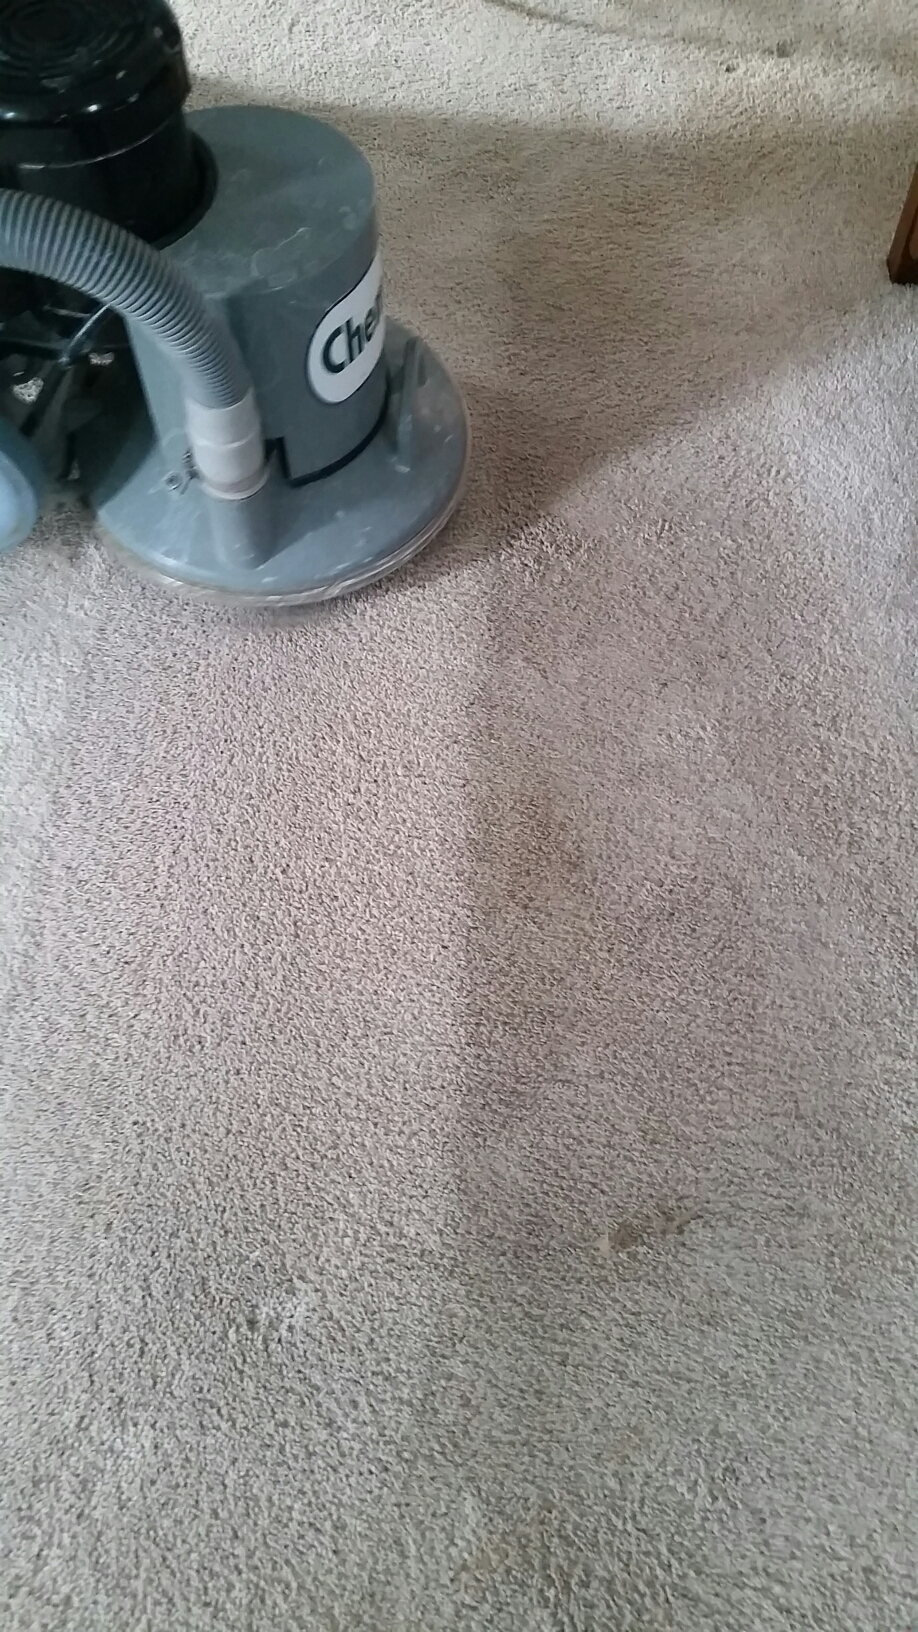 Ashland, VA - This carpet is cleaning up great!